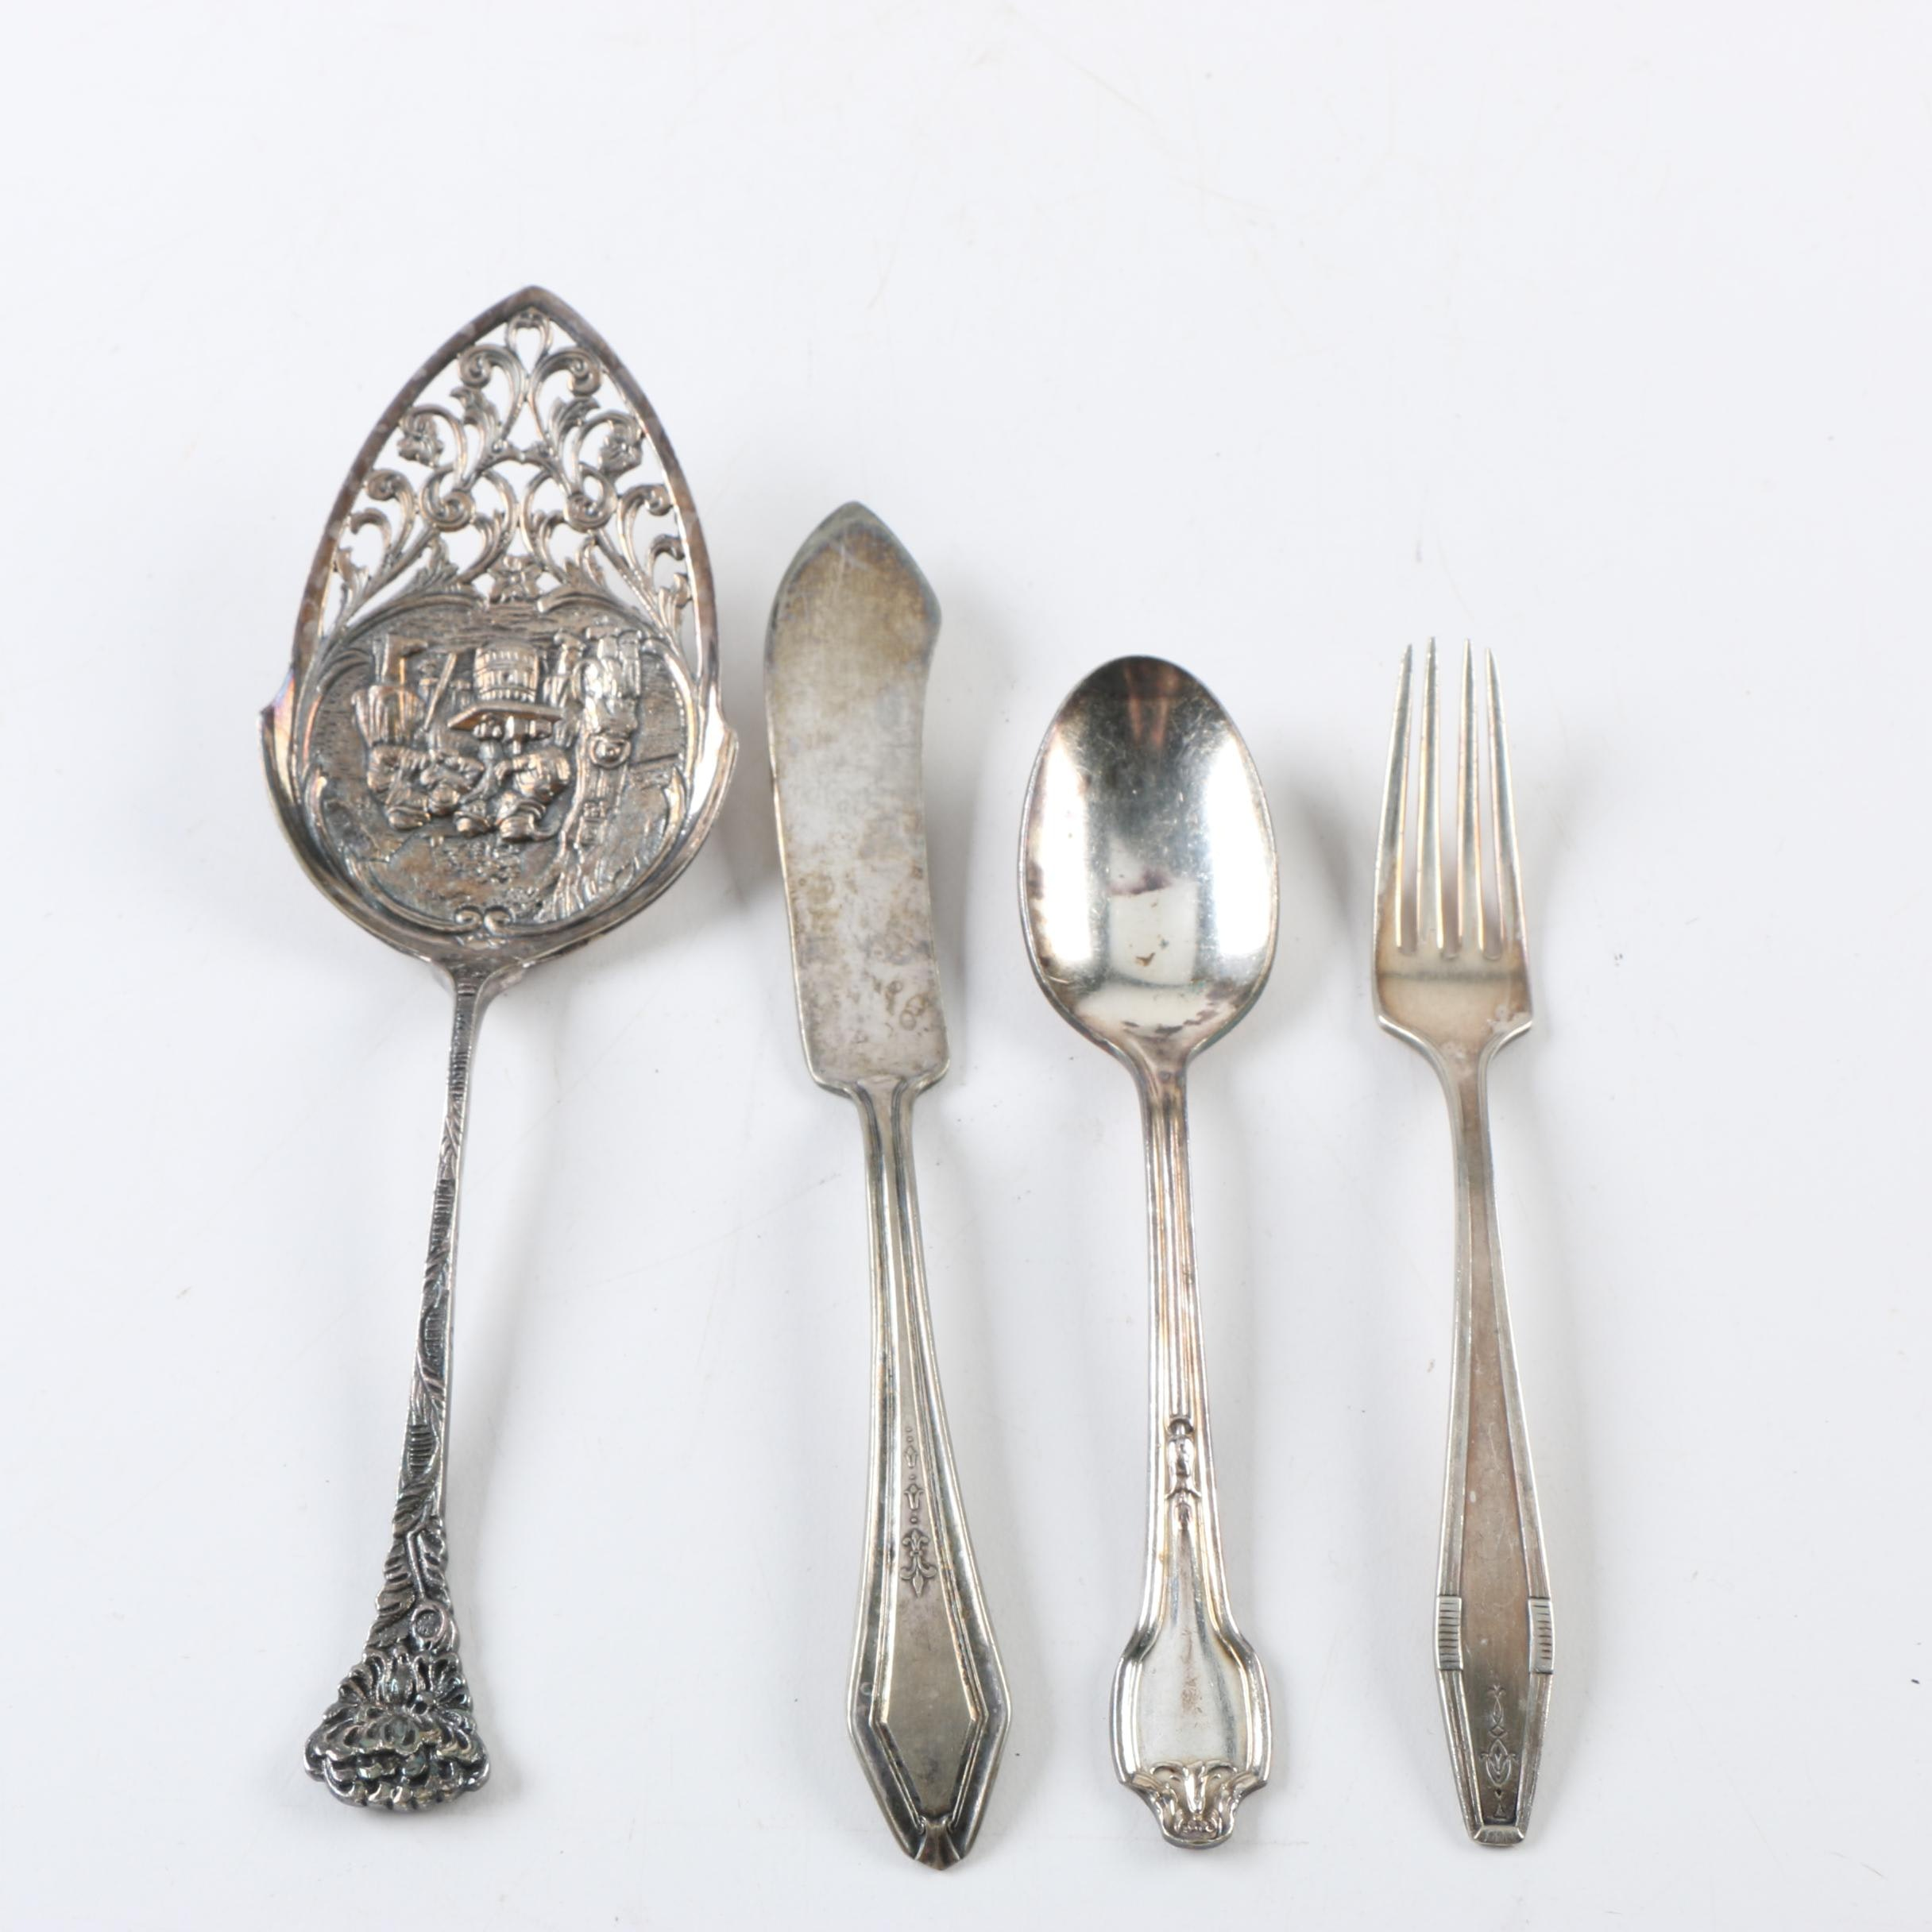 Dutch Openwork Cake Server and Other Silver Plate Servingware